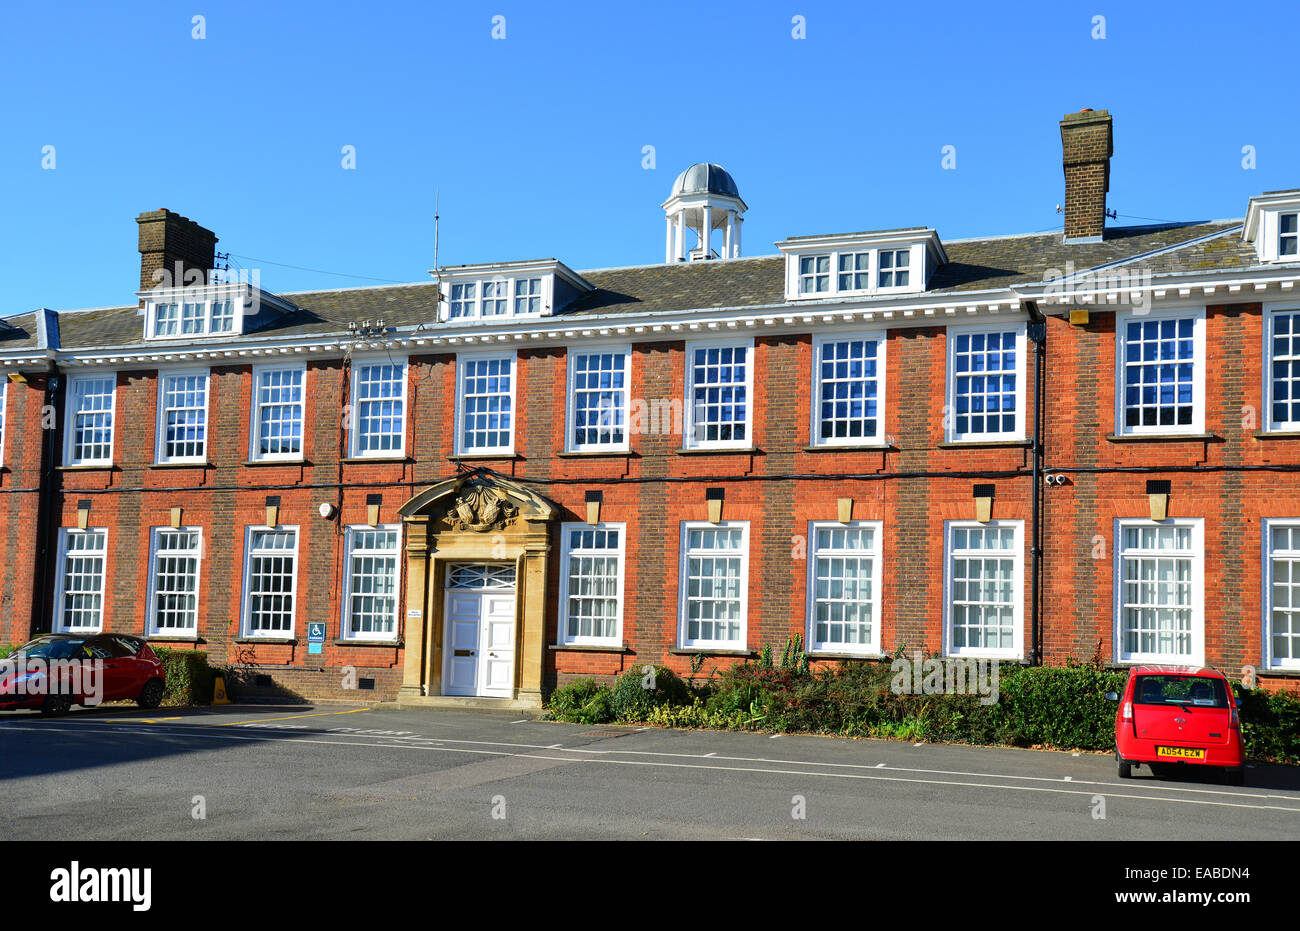 Watford Grammar School for Boys, Rickmansworth Road, Watford, Hertfordshire, England, United Kingdom - Stock Image